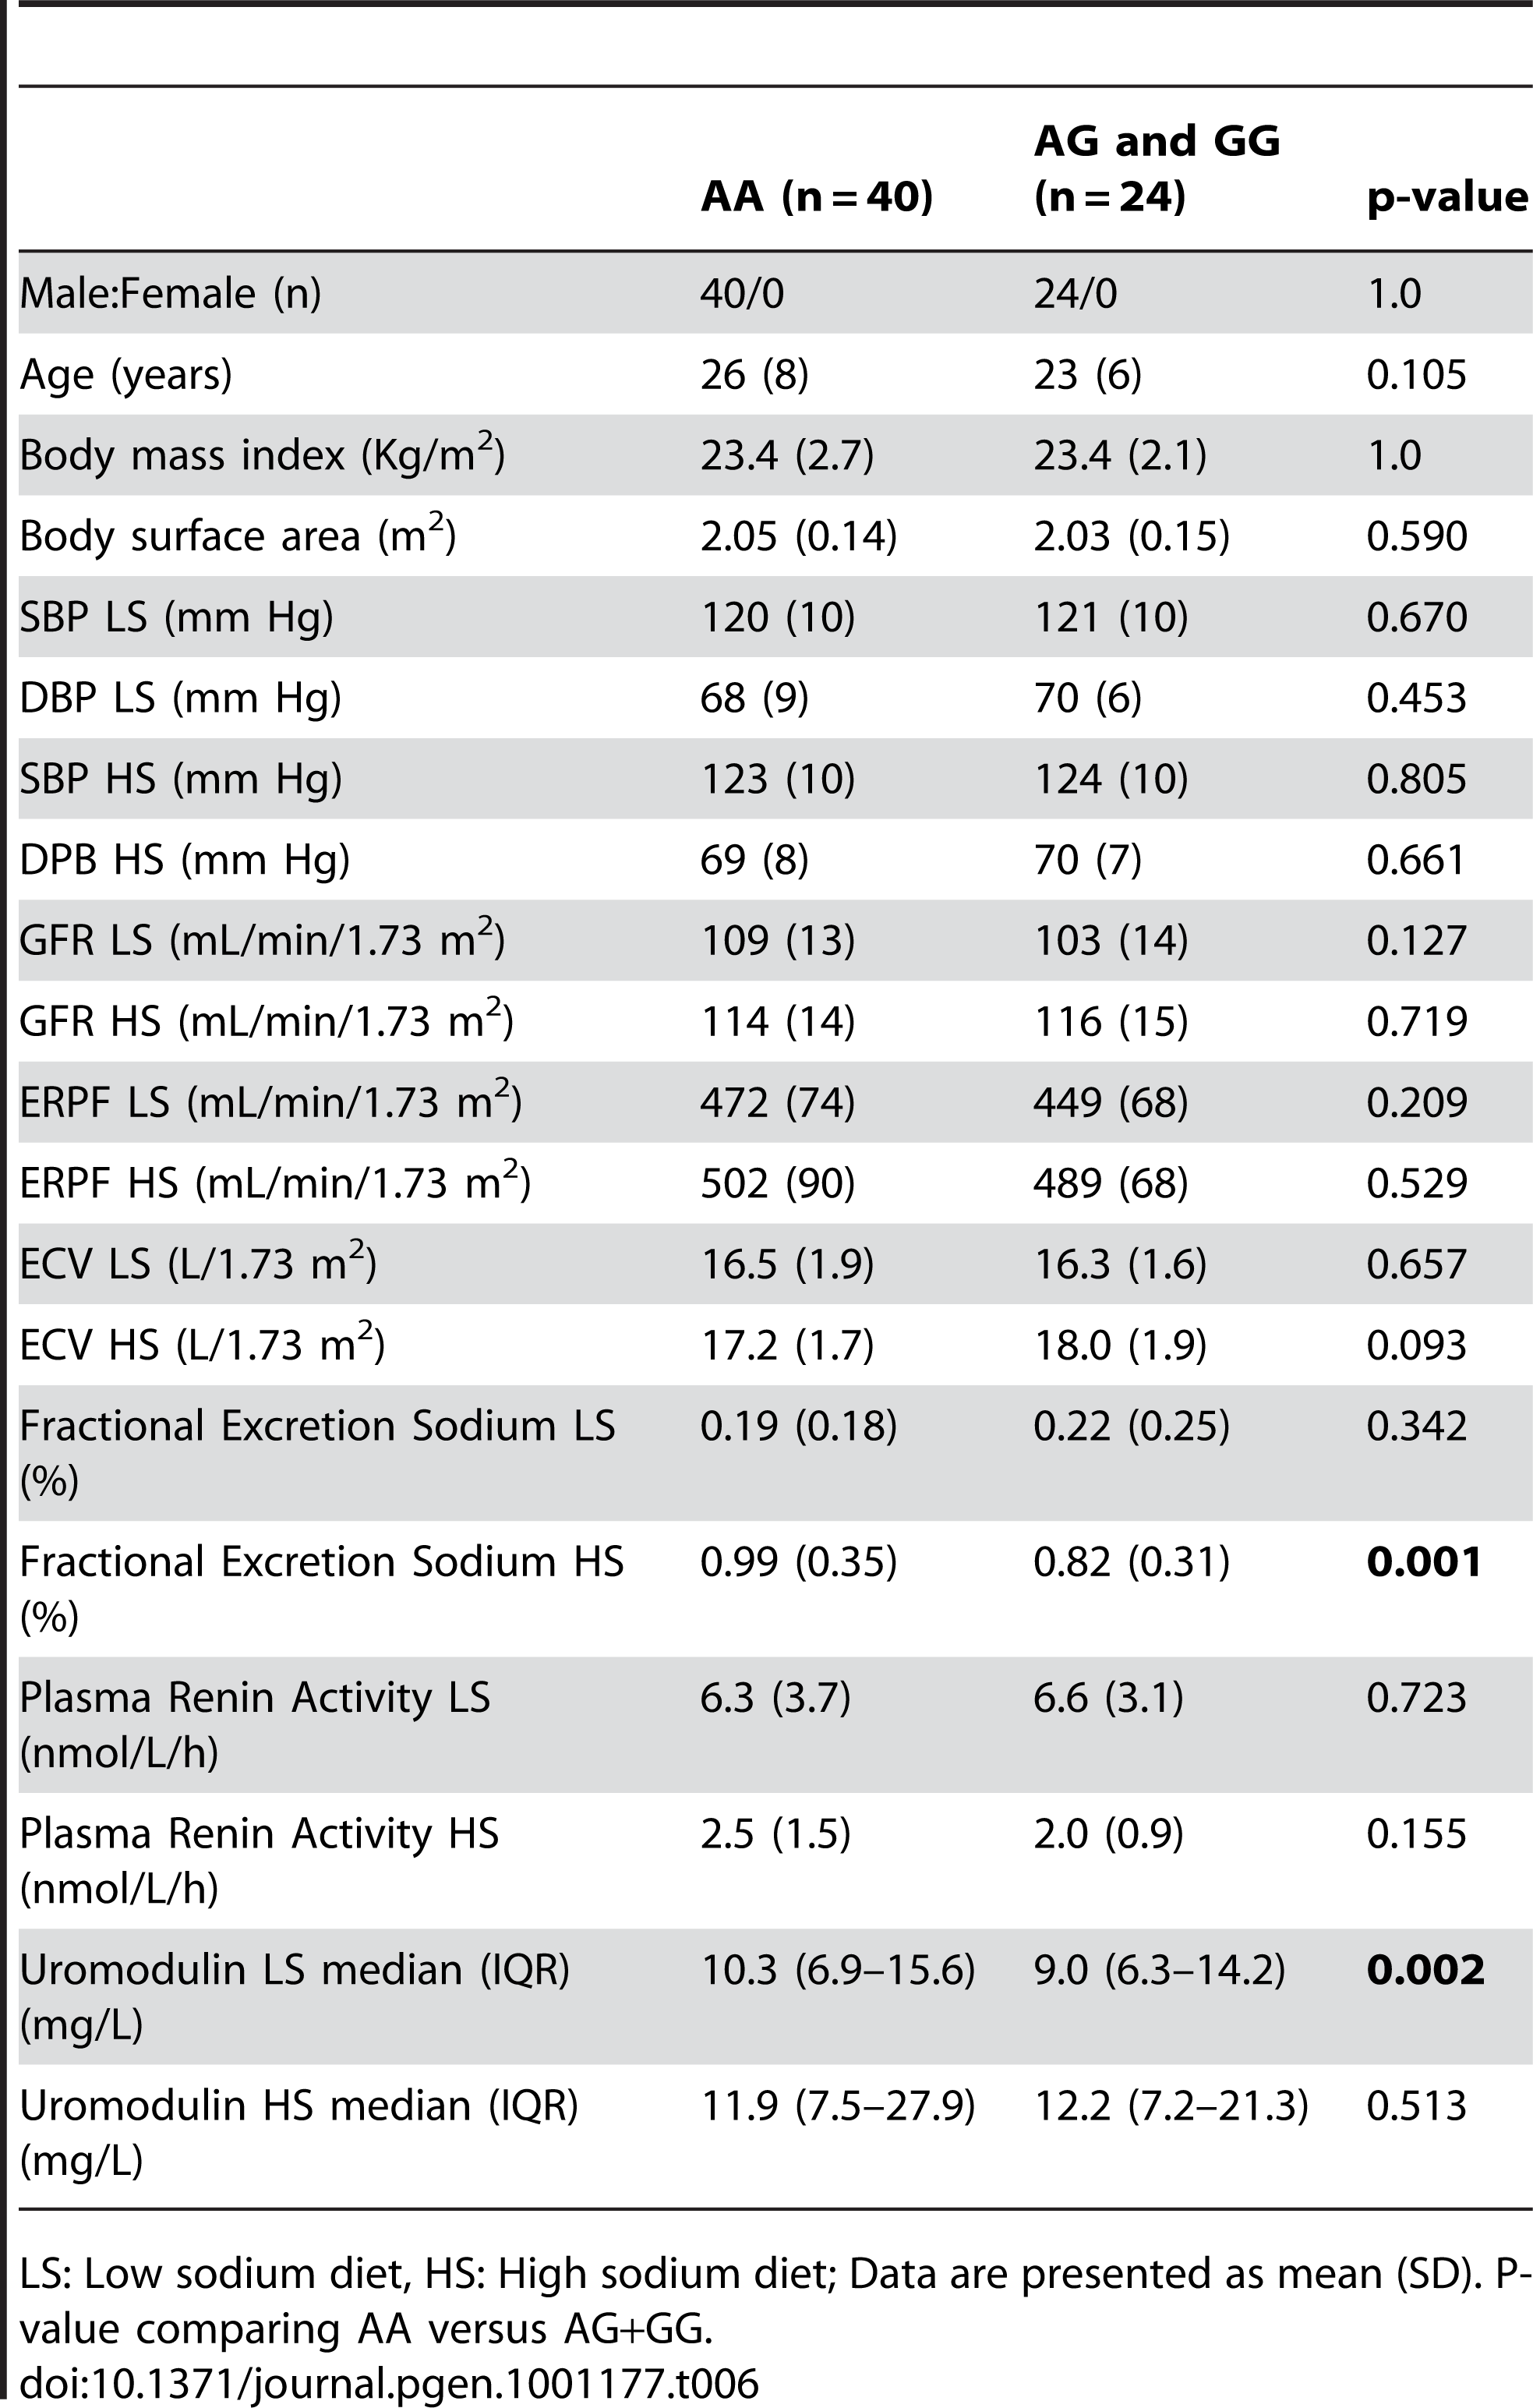 Univariate association analysis of urinary uromodulin in relation to rs13333226 polymorphism and response to high and low sodium intake (GRECO Study).